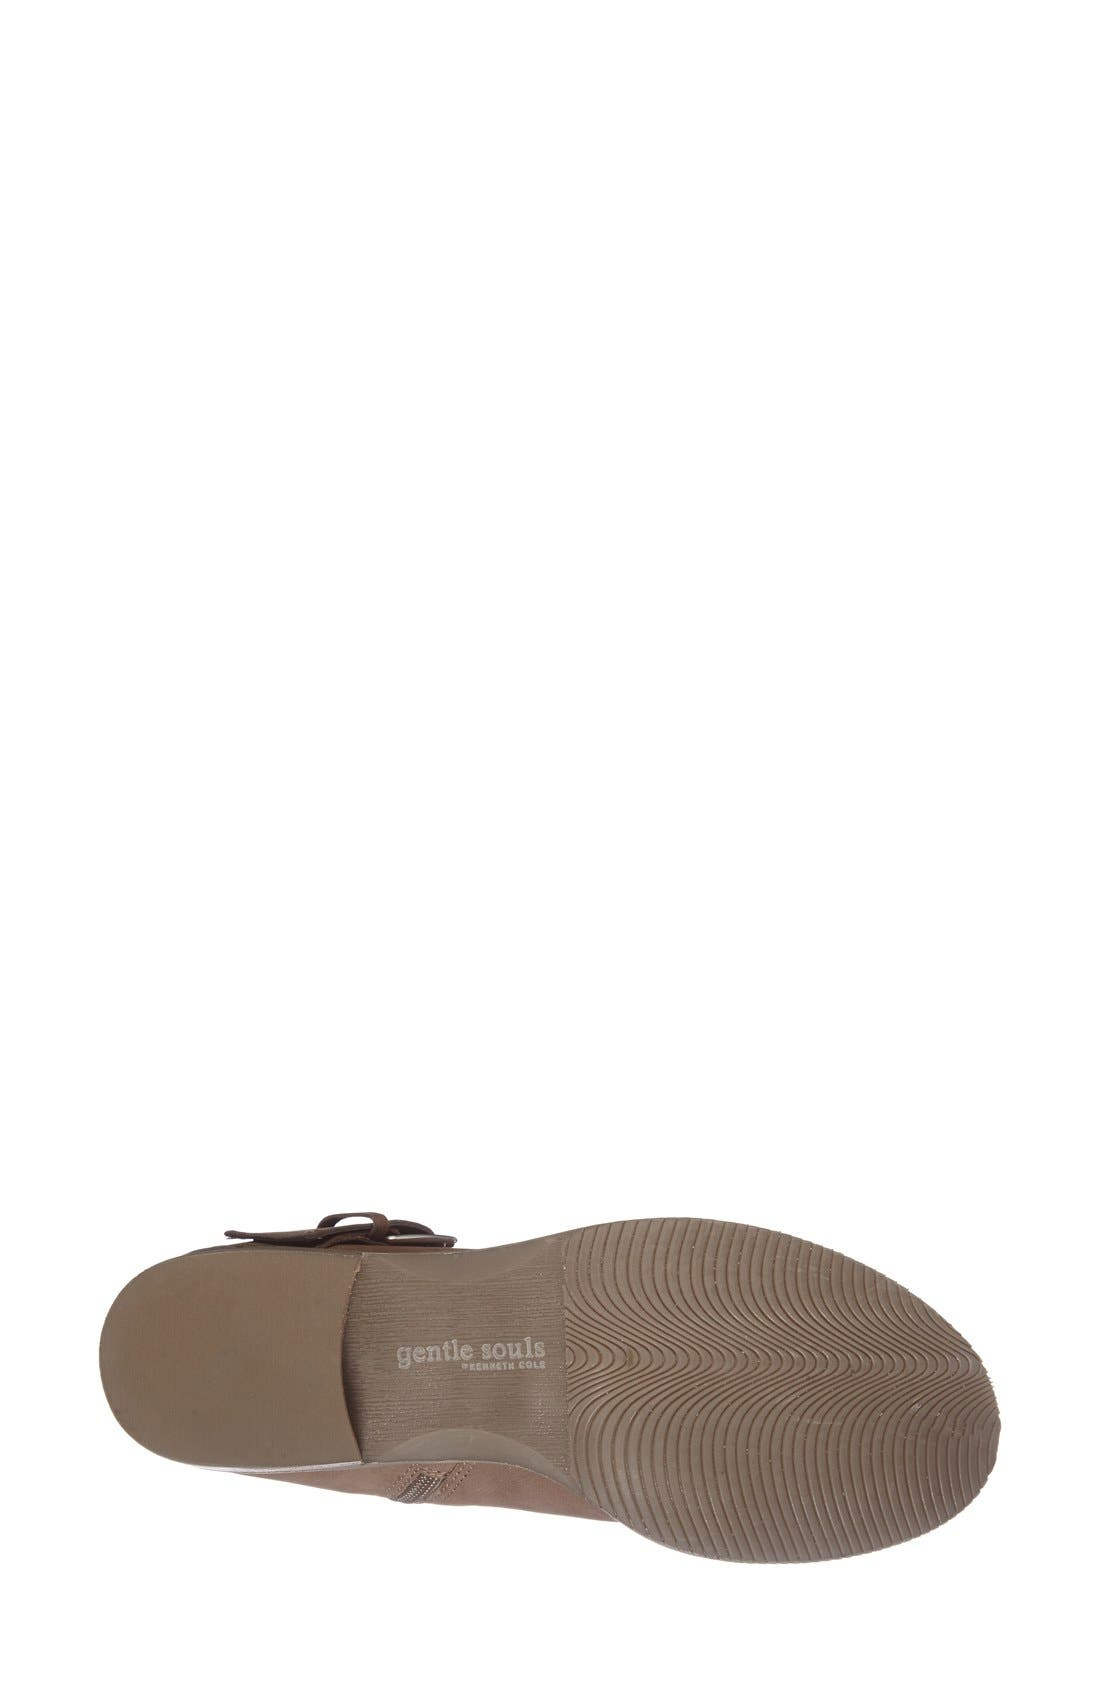 by Kenneth Cole 'Best Of' Boot,                             Alternate thumbnail 15, color,